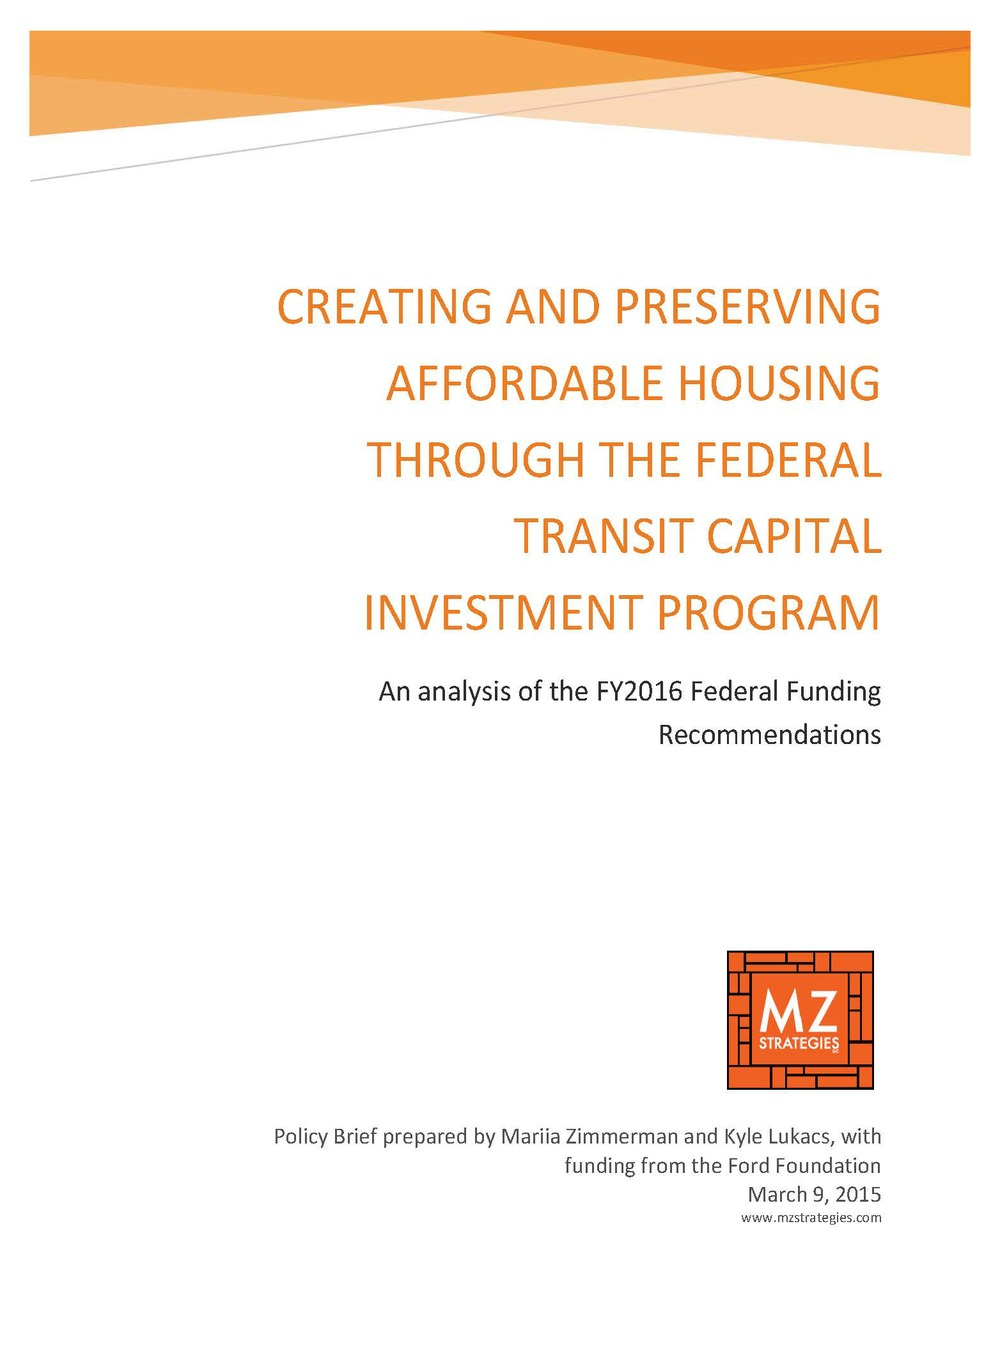 Click here to read the Policy Brief's analysis of affordable housing ratings included in the FY2016 Annual New Starts Report by FTA.